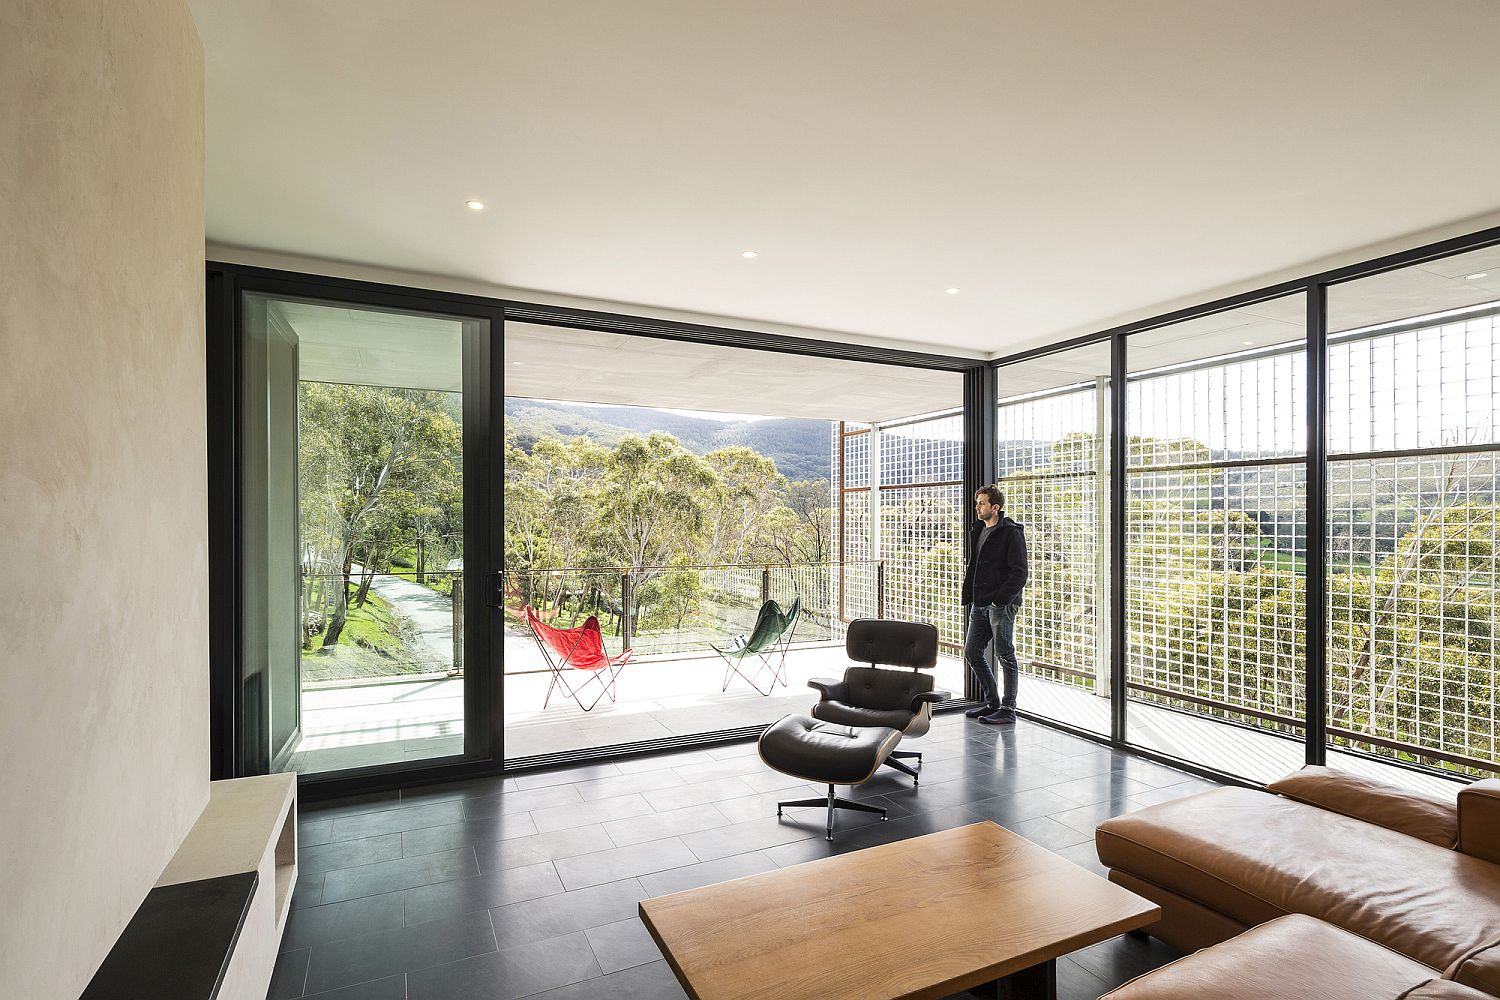 Living area of the Mount Macedon House that flows into the balcony